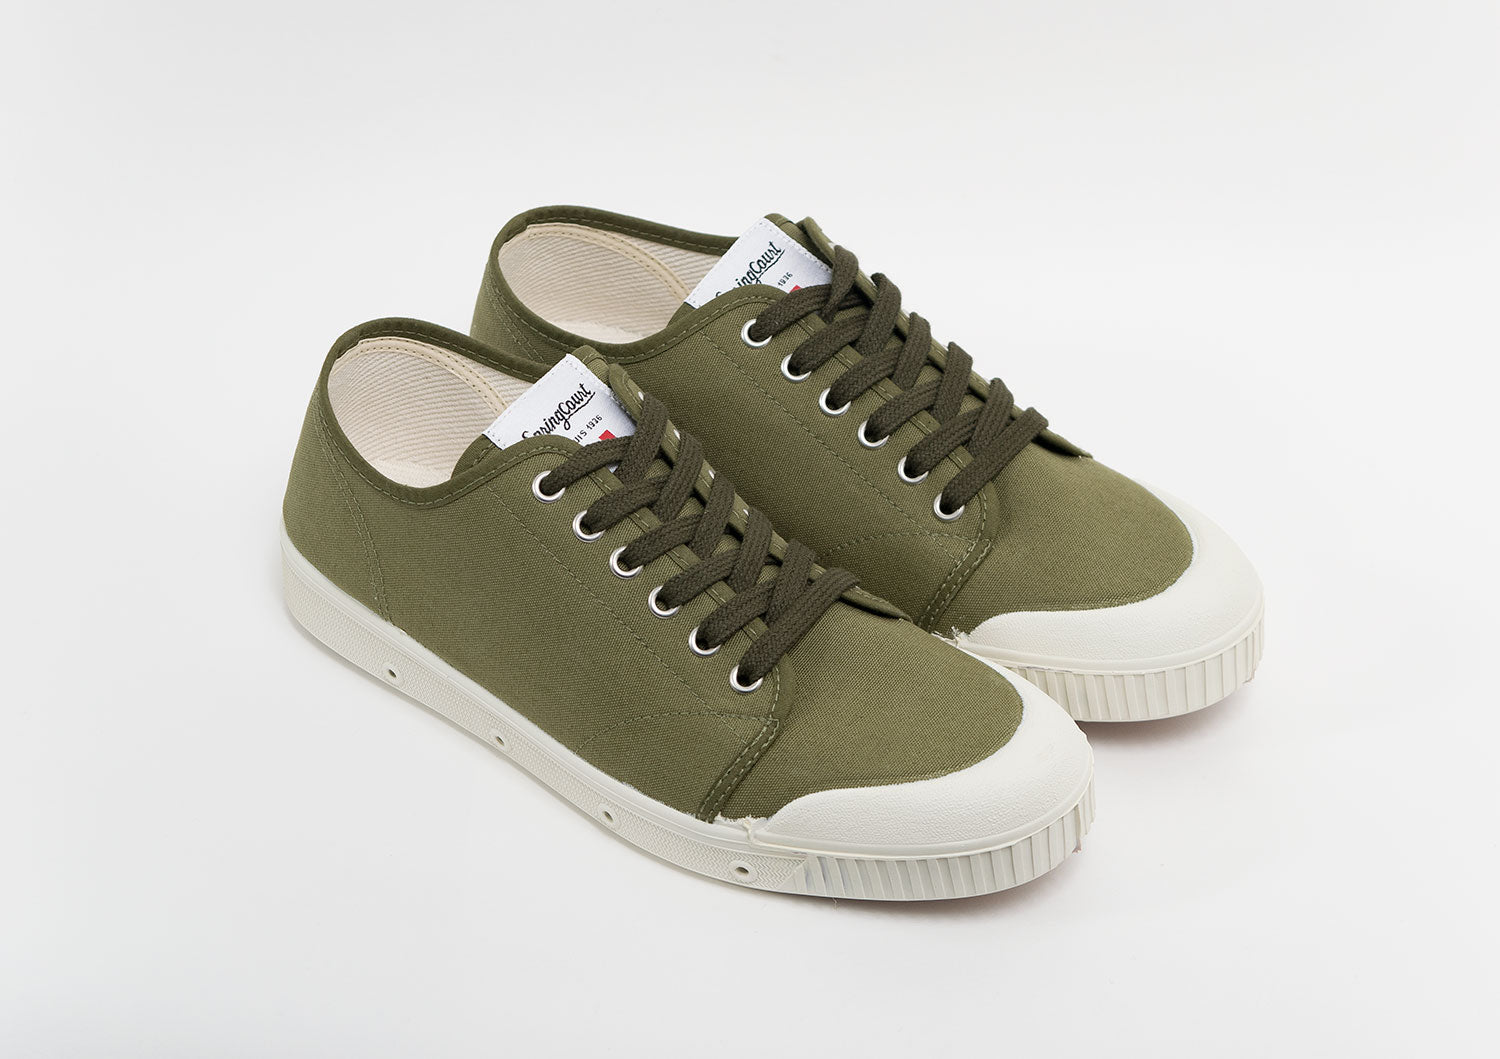 Spring Court G2 Military Green